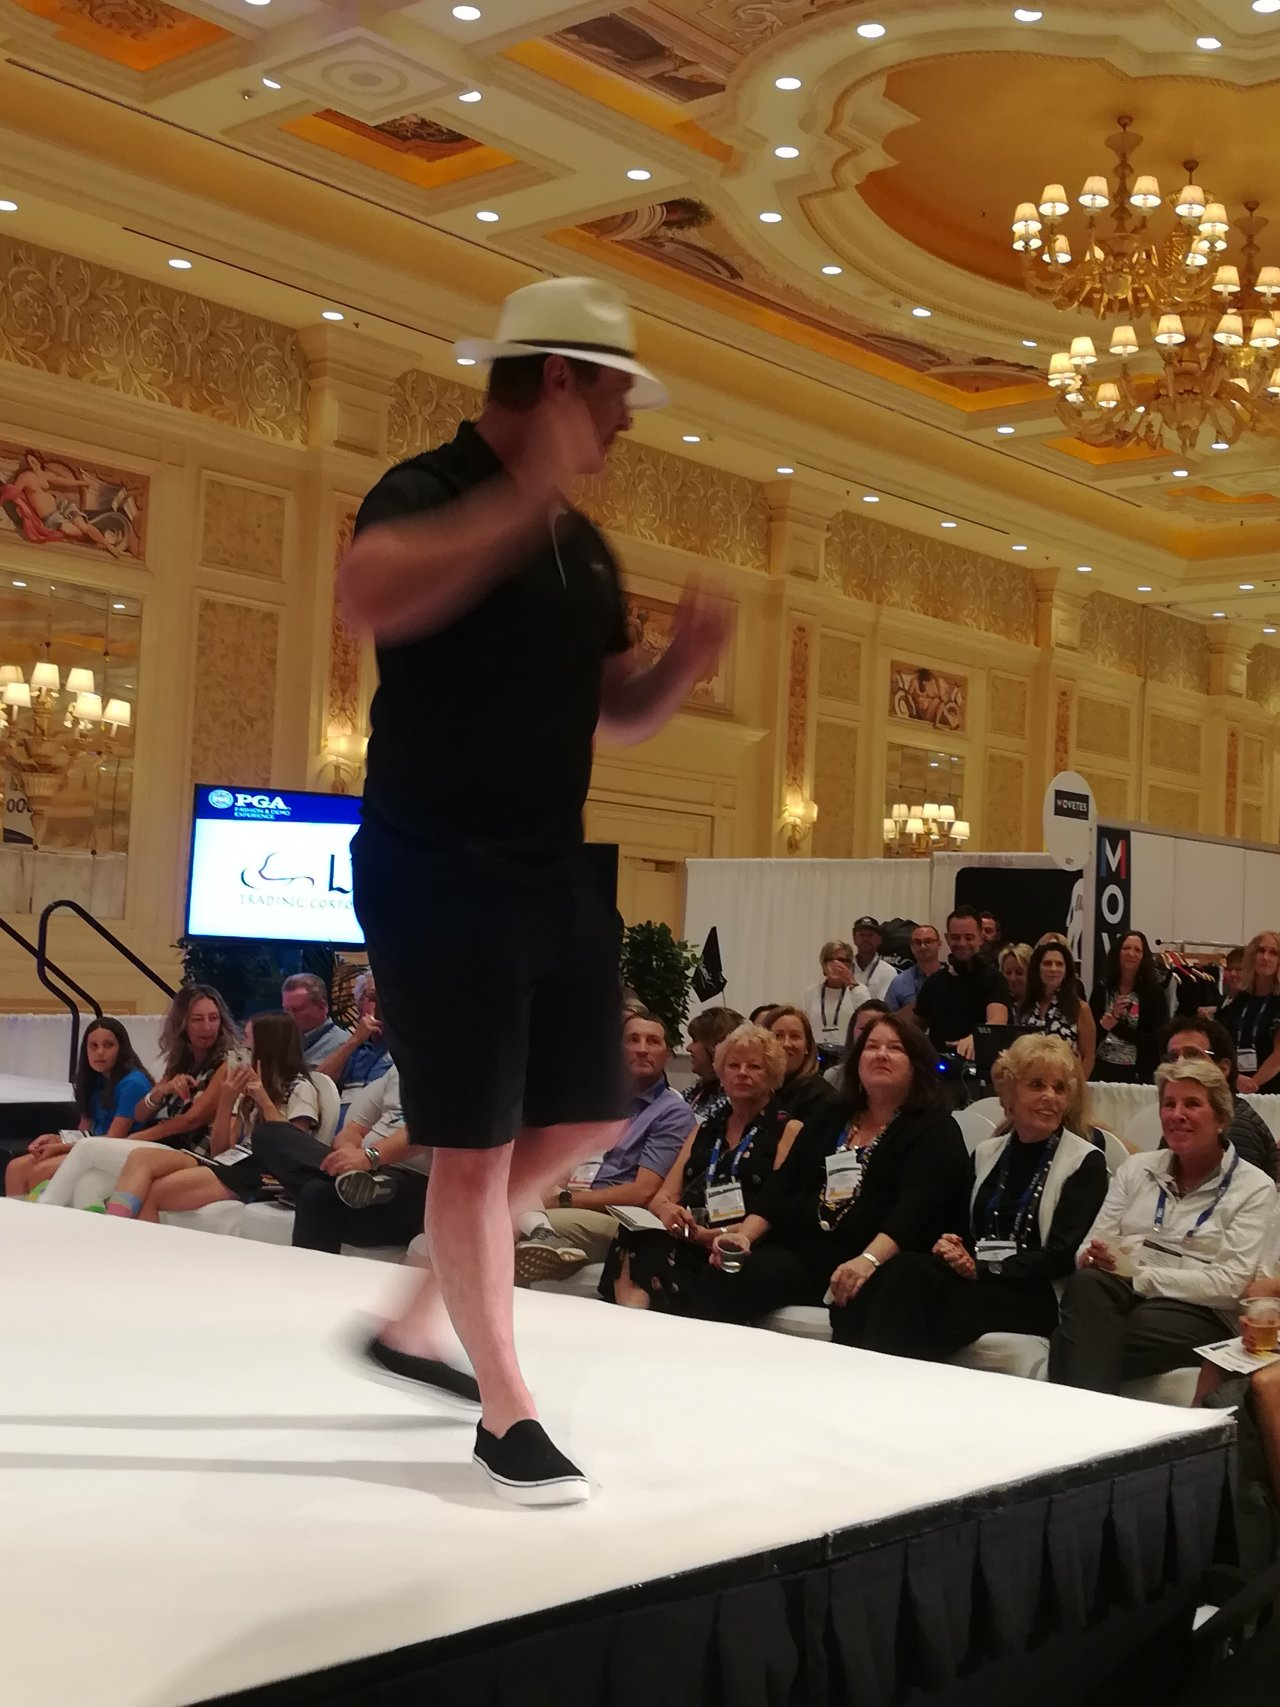 2018 Pga Fashion And Demo Experience The Venetian Hotel And Topgolf Las Vegas Nevada August 13 To 15 2018 26 Fashion Categories Newsmexx Tv